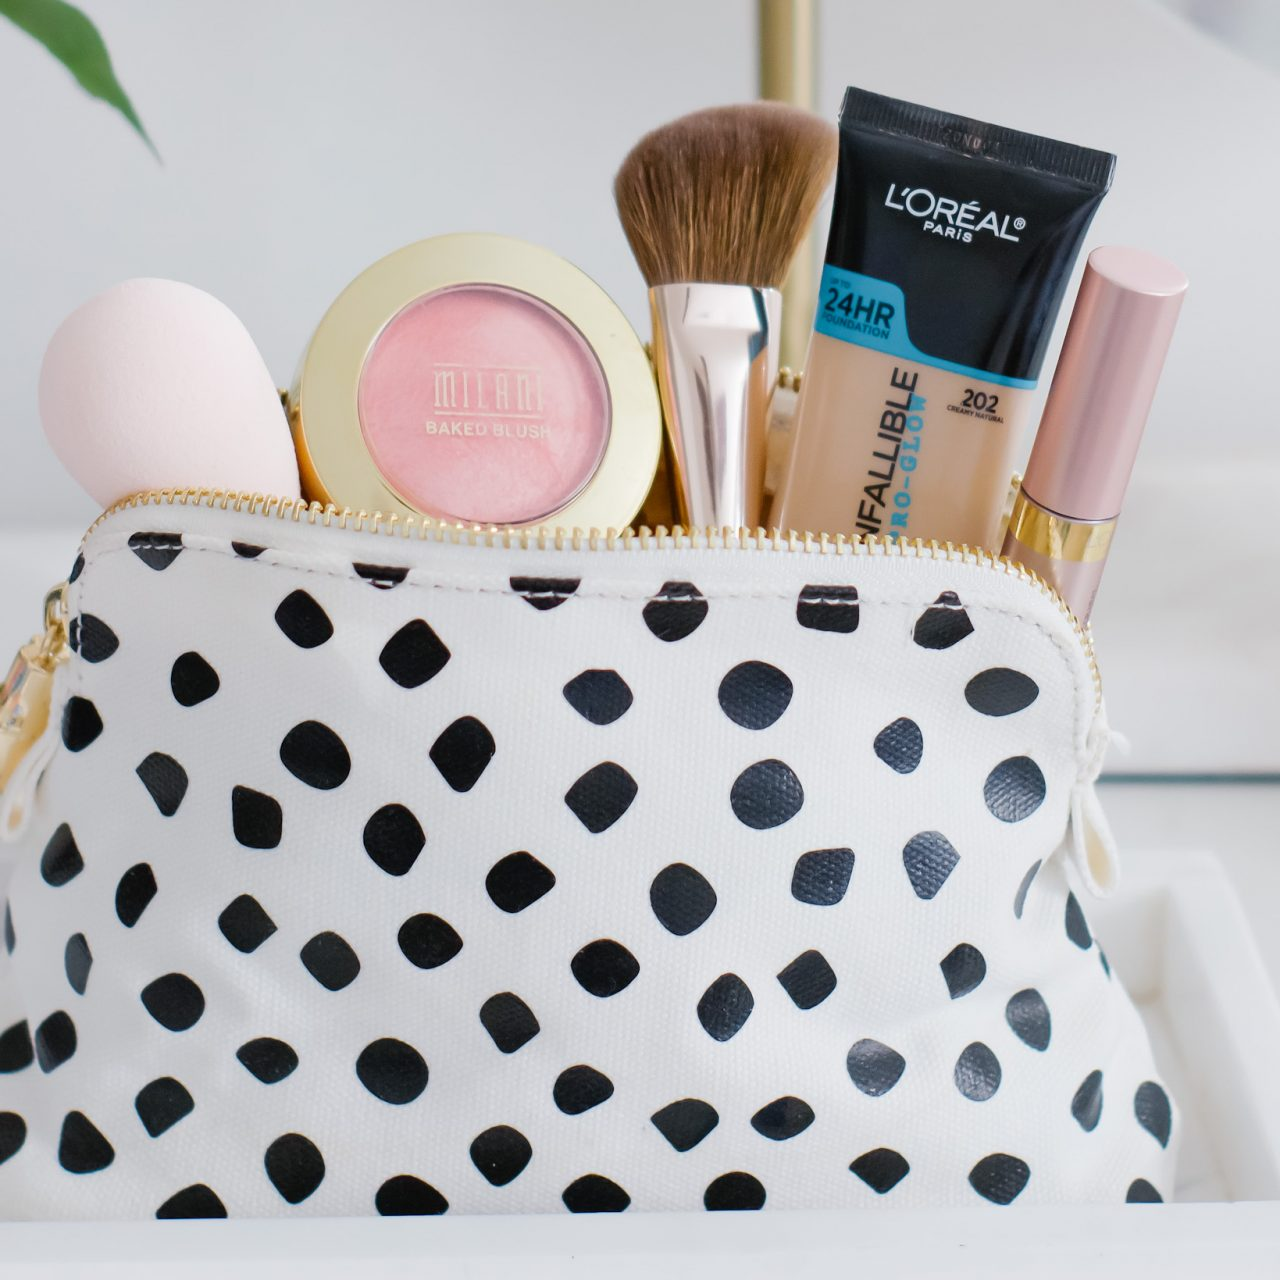 THE BEST DRUGSTORE MAKEUP PRODUCTS FOR WOMEN 40+